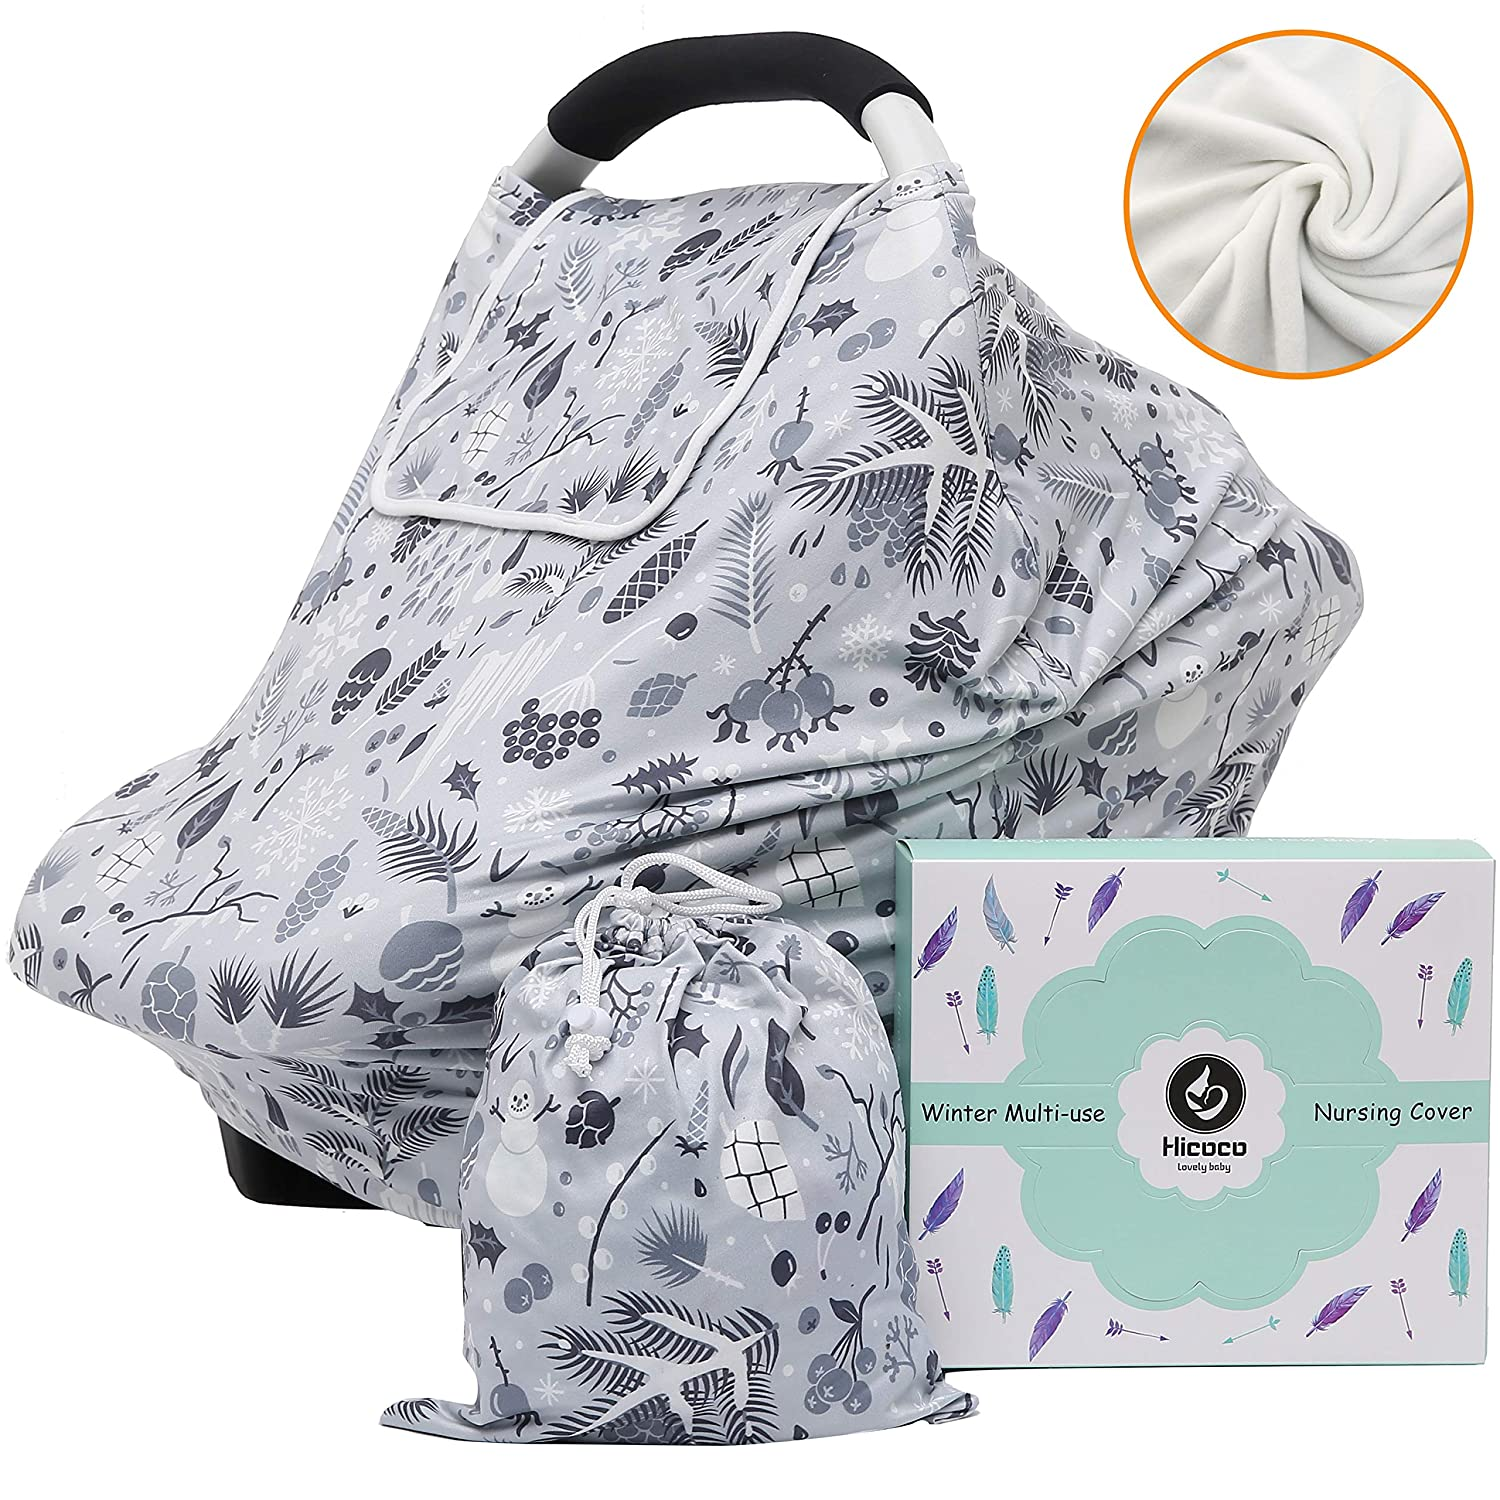 Winter Fleece Lined Baby Car Seat Covers Thermal Double Layer Carseat Canopy Multi-use Stretchy Breastfeeding Nursing Covers for Boys and Girls Hicoco